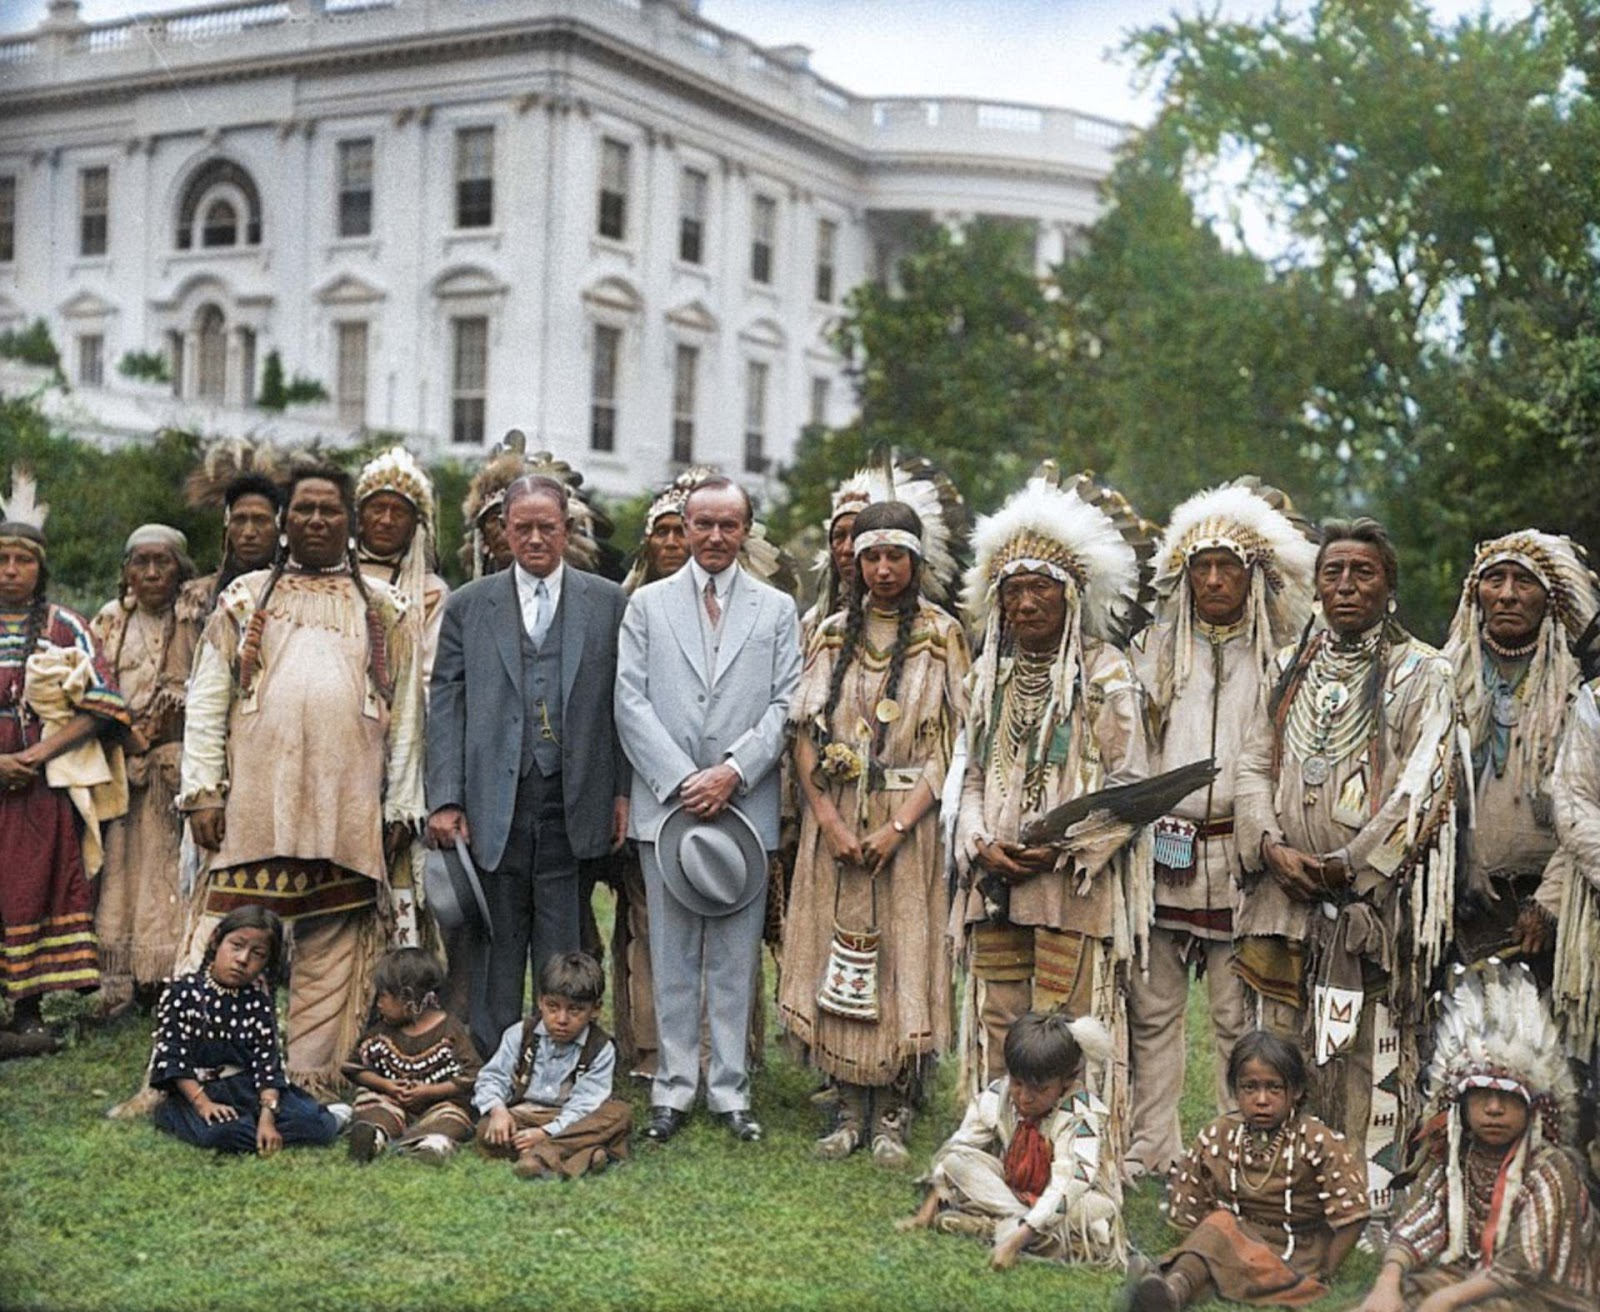 President Calvin Coolidge poses for a picture with a group of Native Americans outside the White House